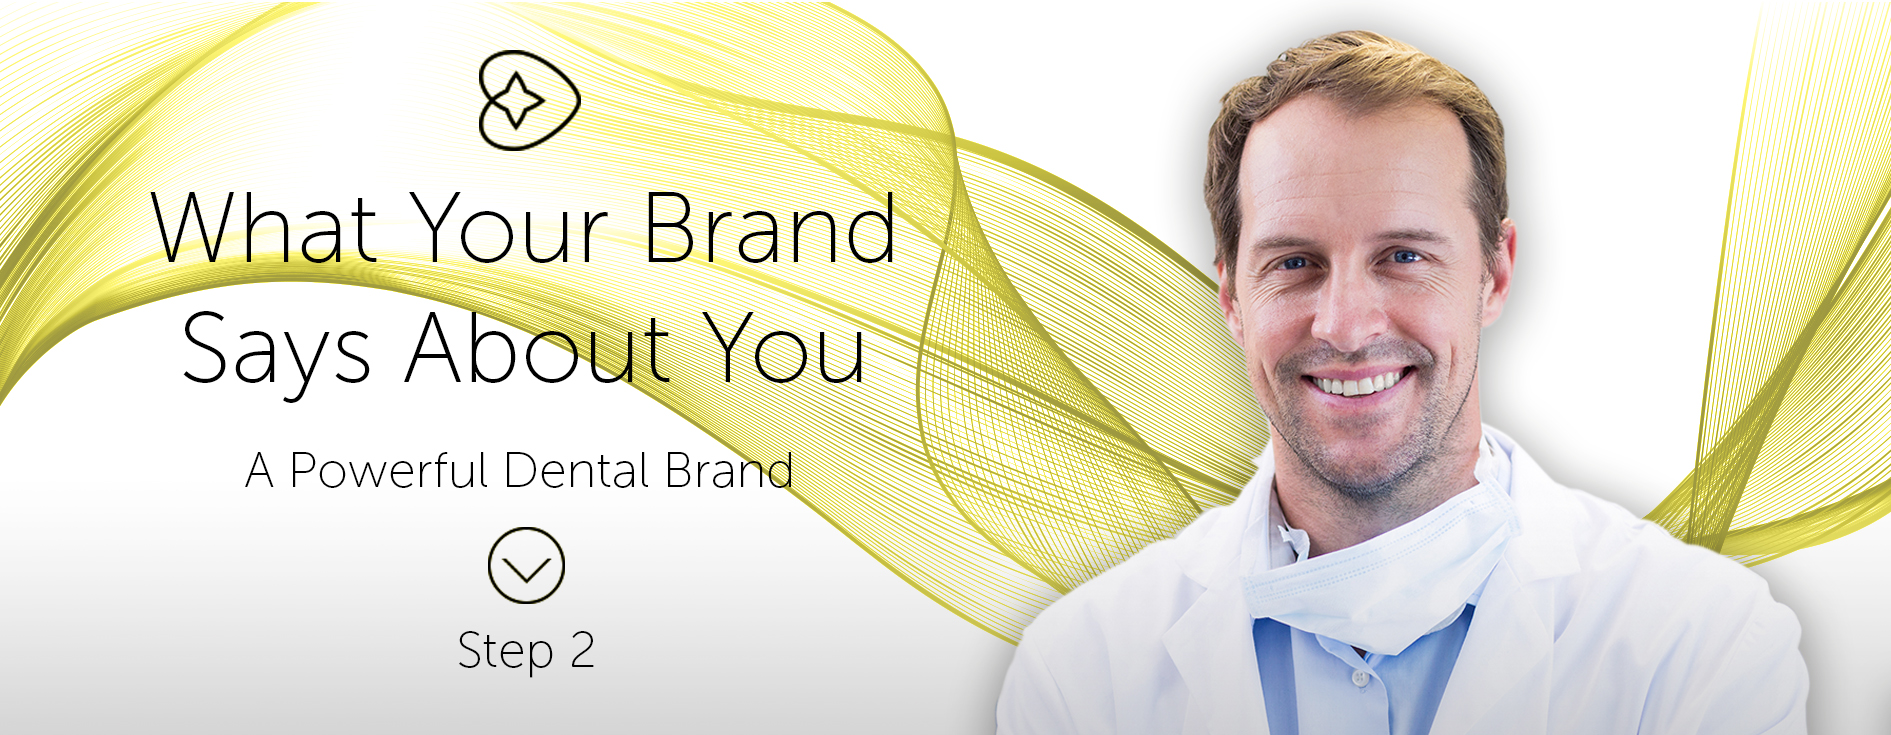 dental brand creation